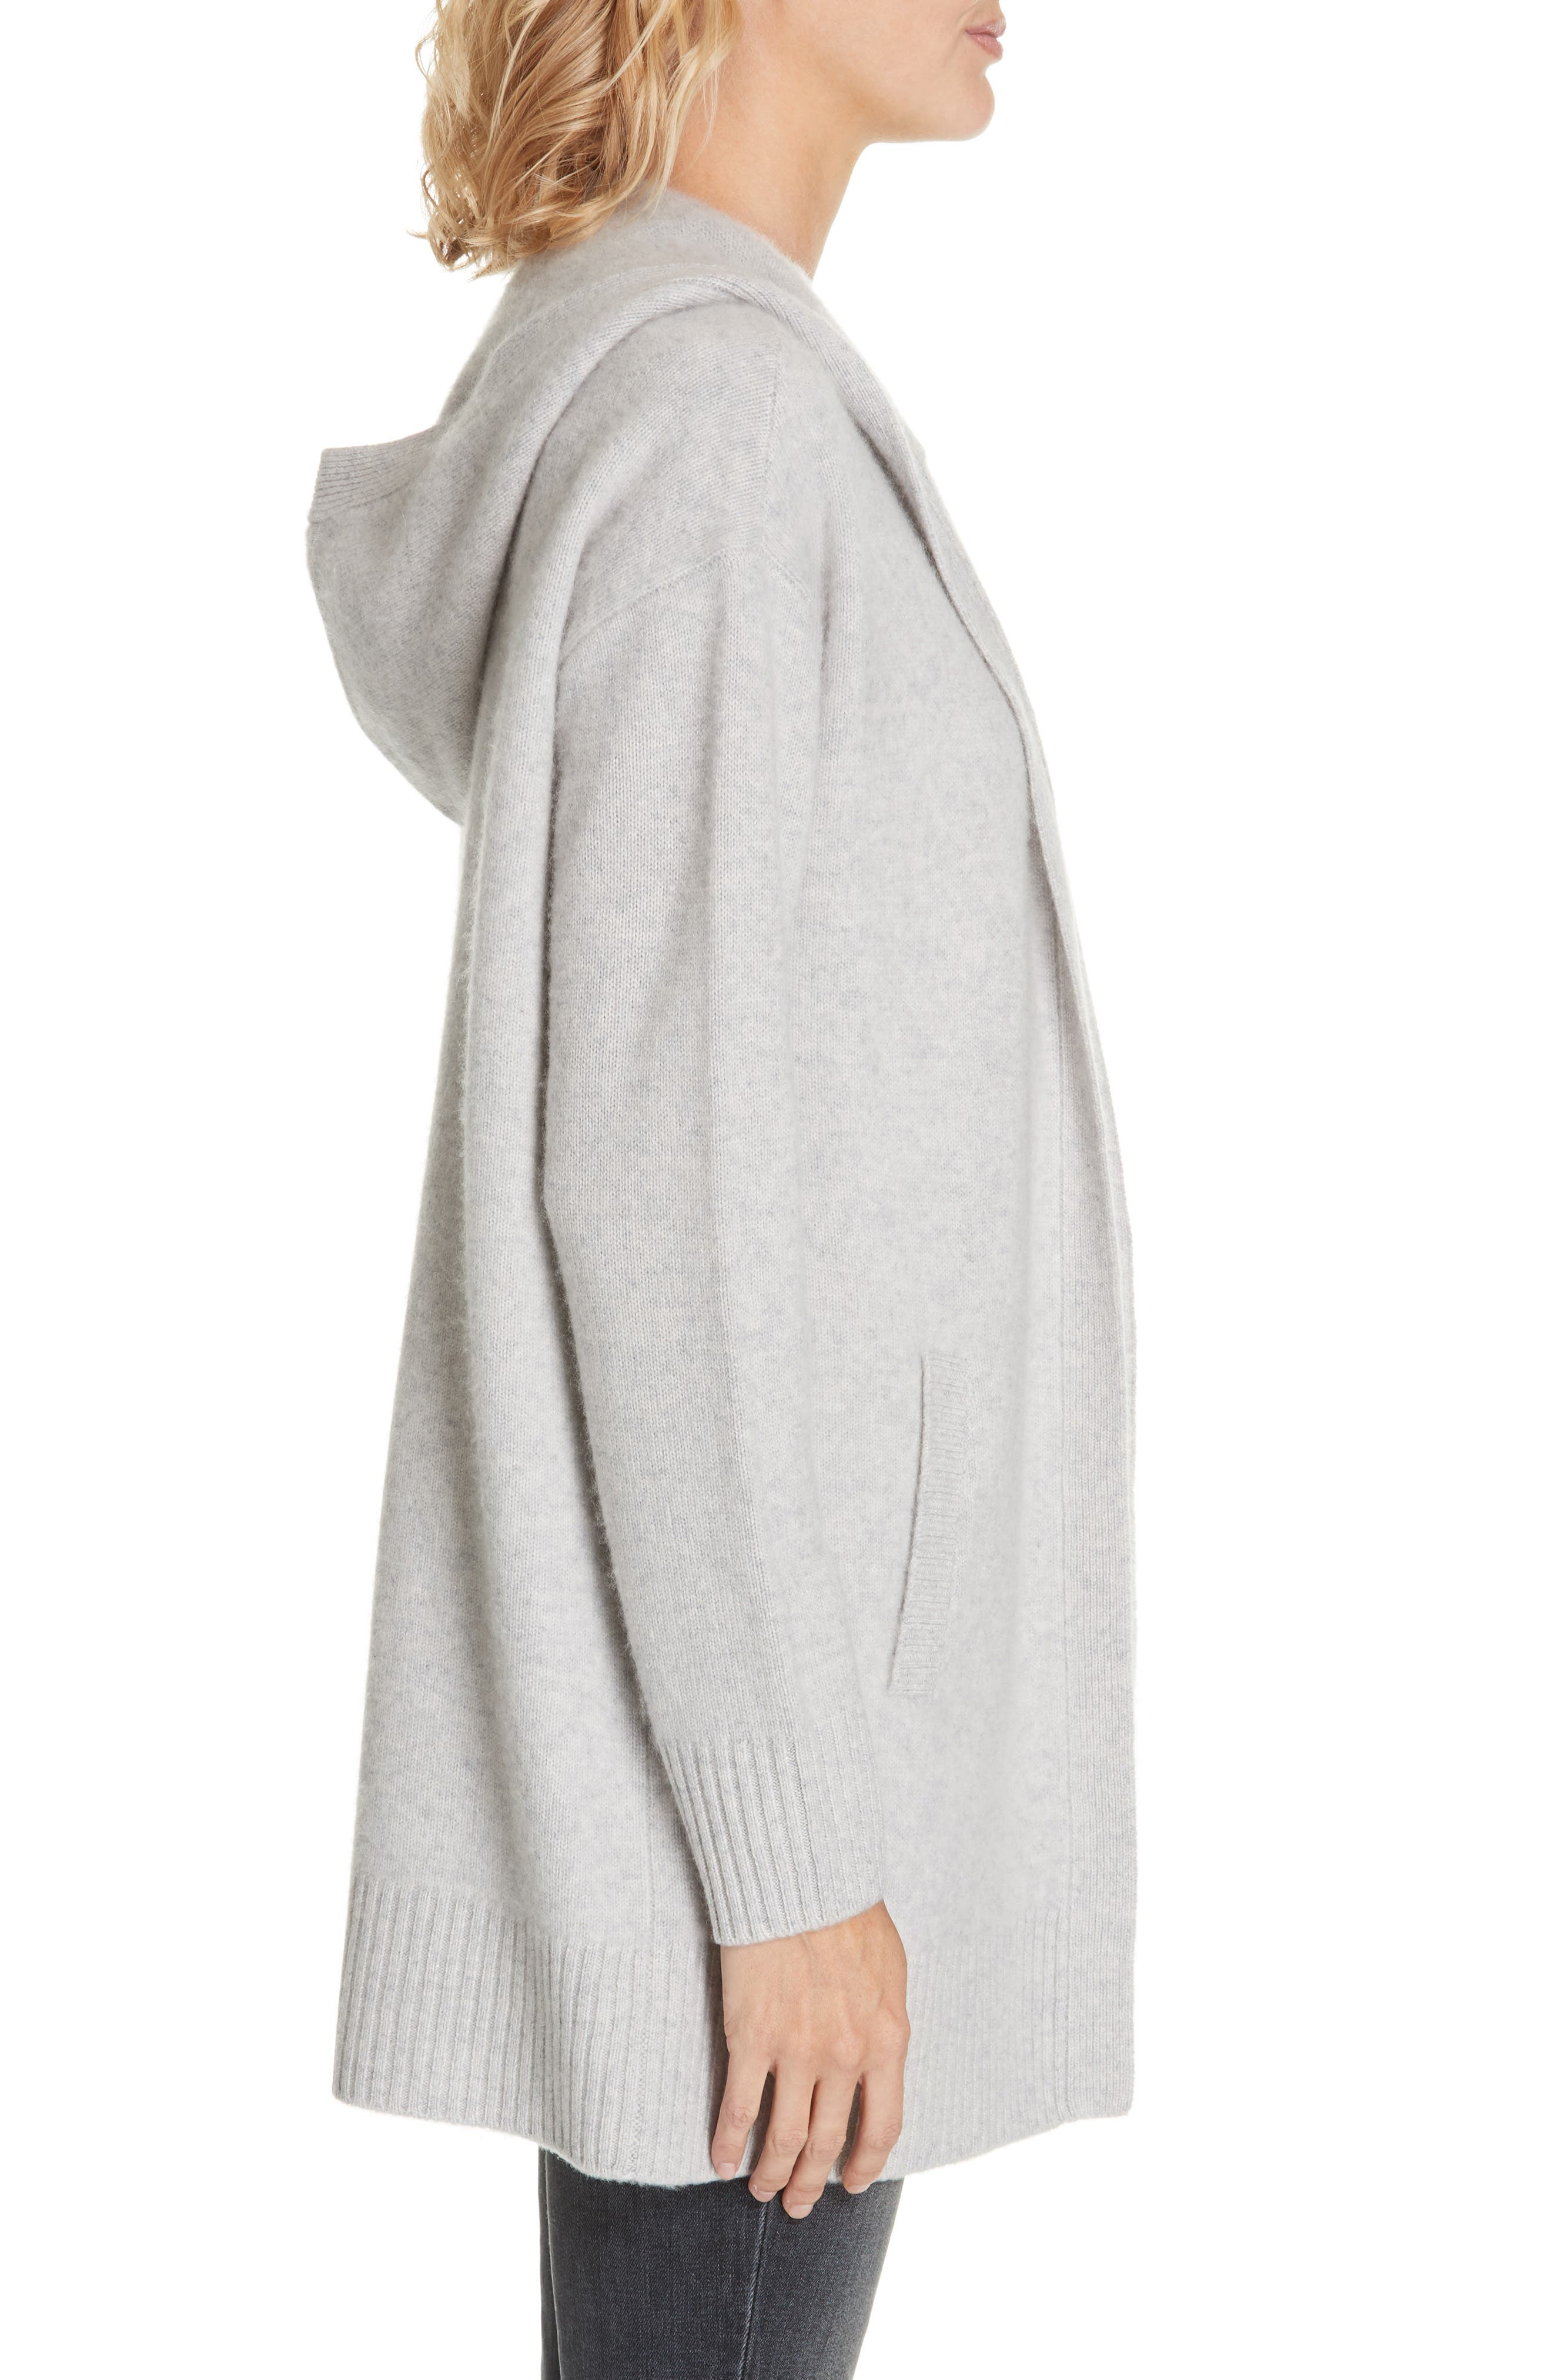 NORDSTROM SIGNATURE,                             Hooded Boiled Cashmere Cardigan,                             Alternate thumbnail 3, color,                             GREY CLAY HEATHER